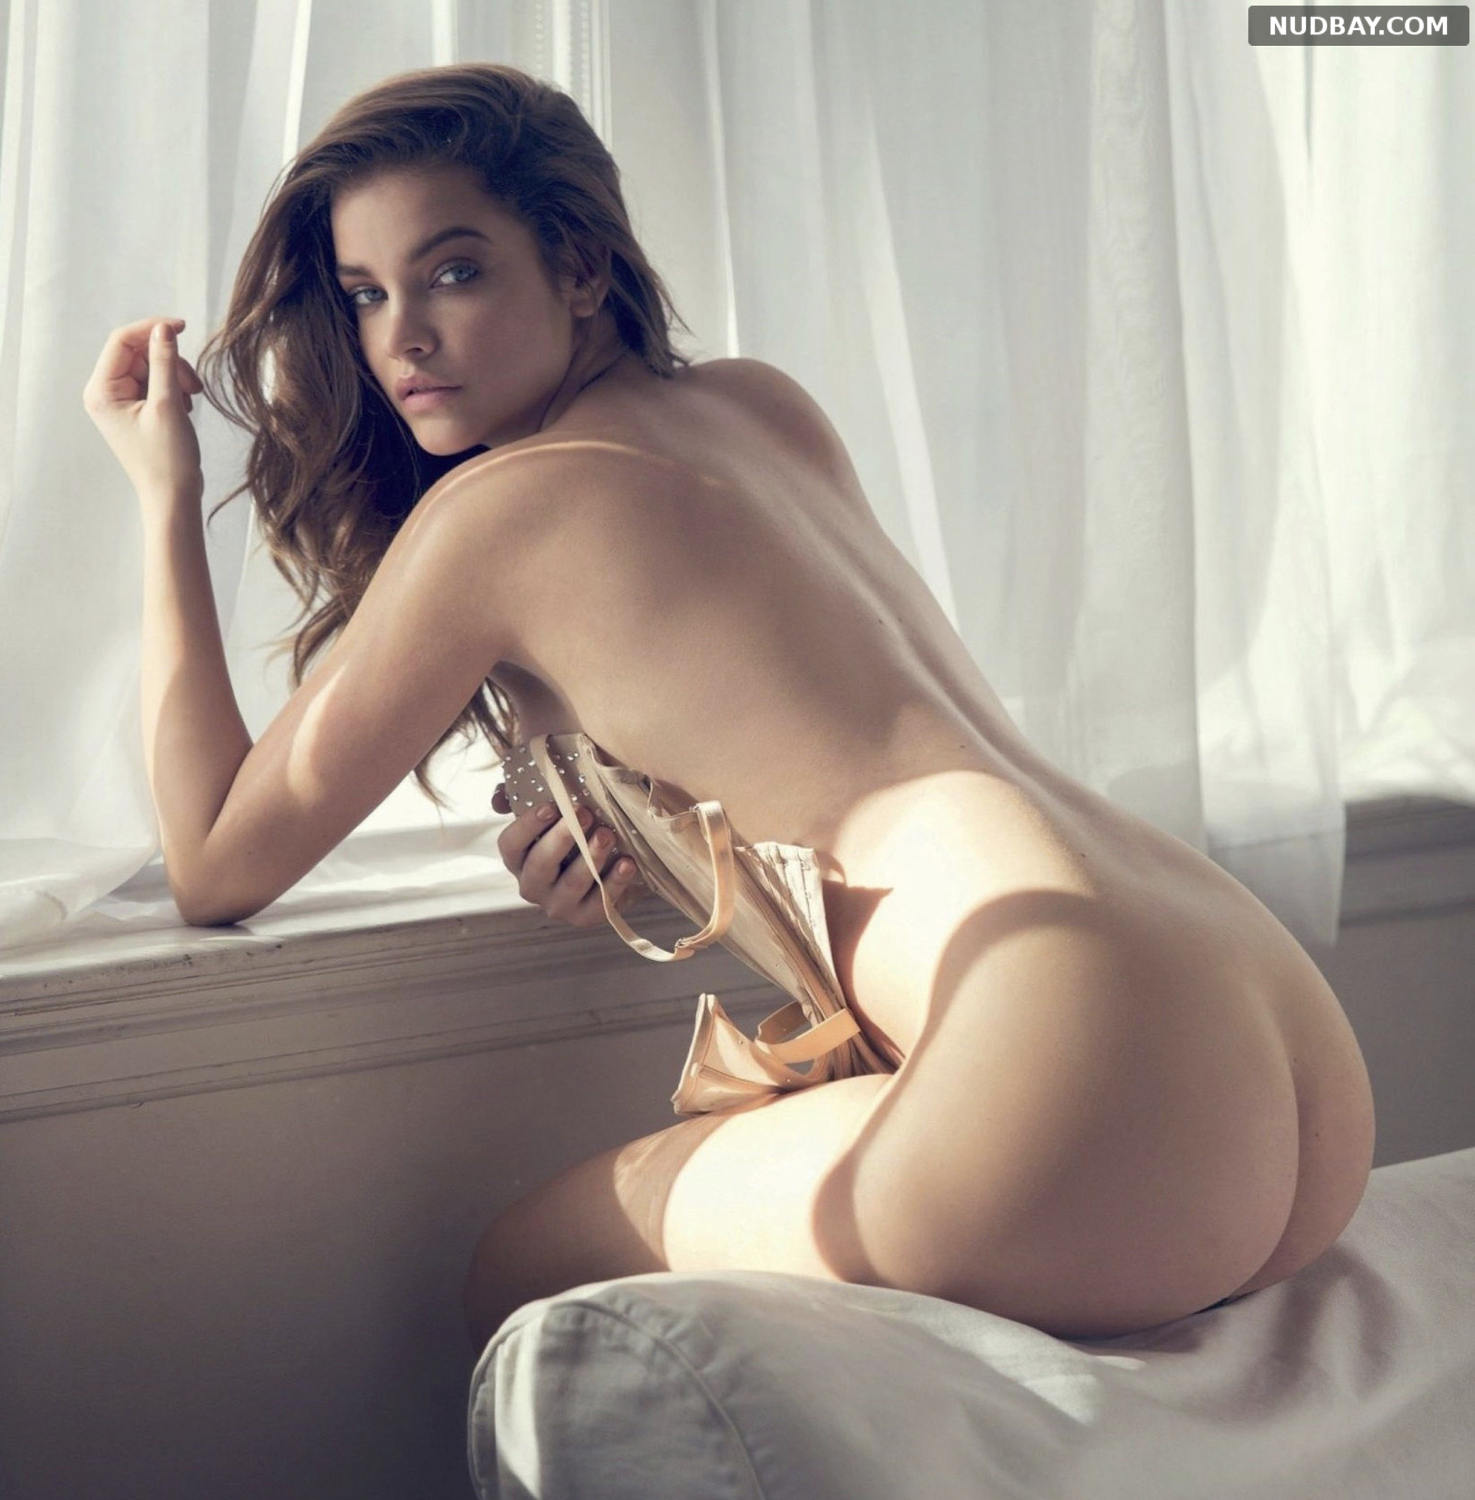 Barbara Palvin Nude Photoshoot for LUI Magazine by David Bellemere